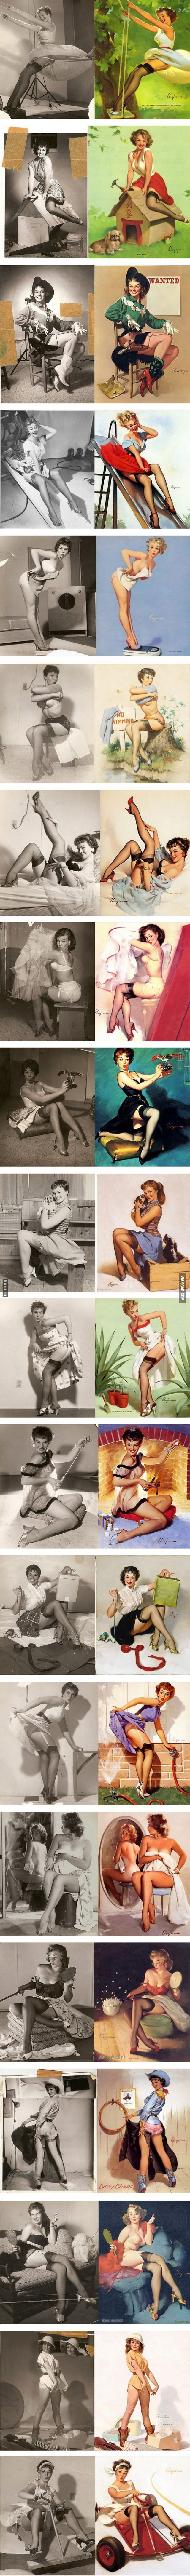 pinup art before photoshop